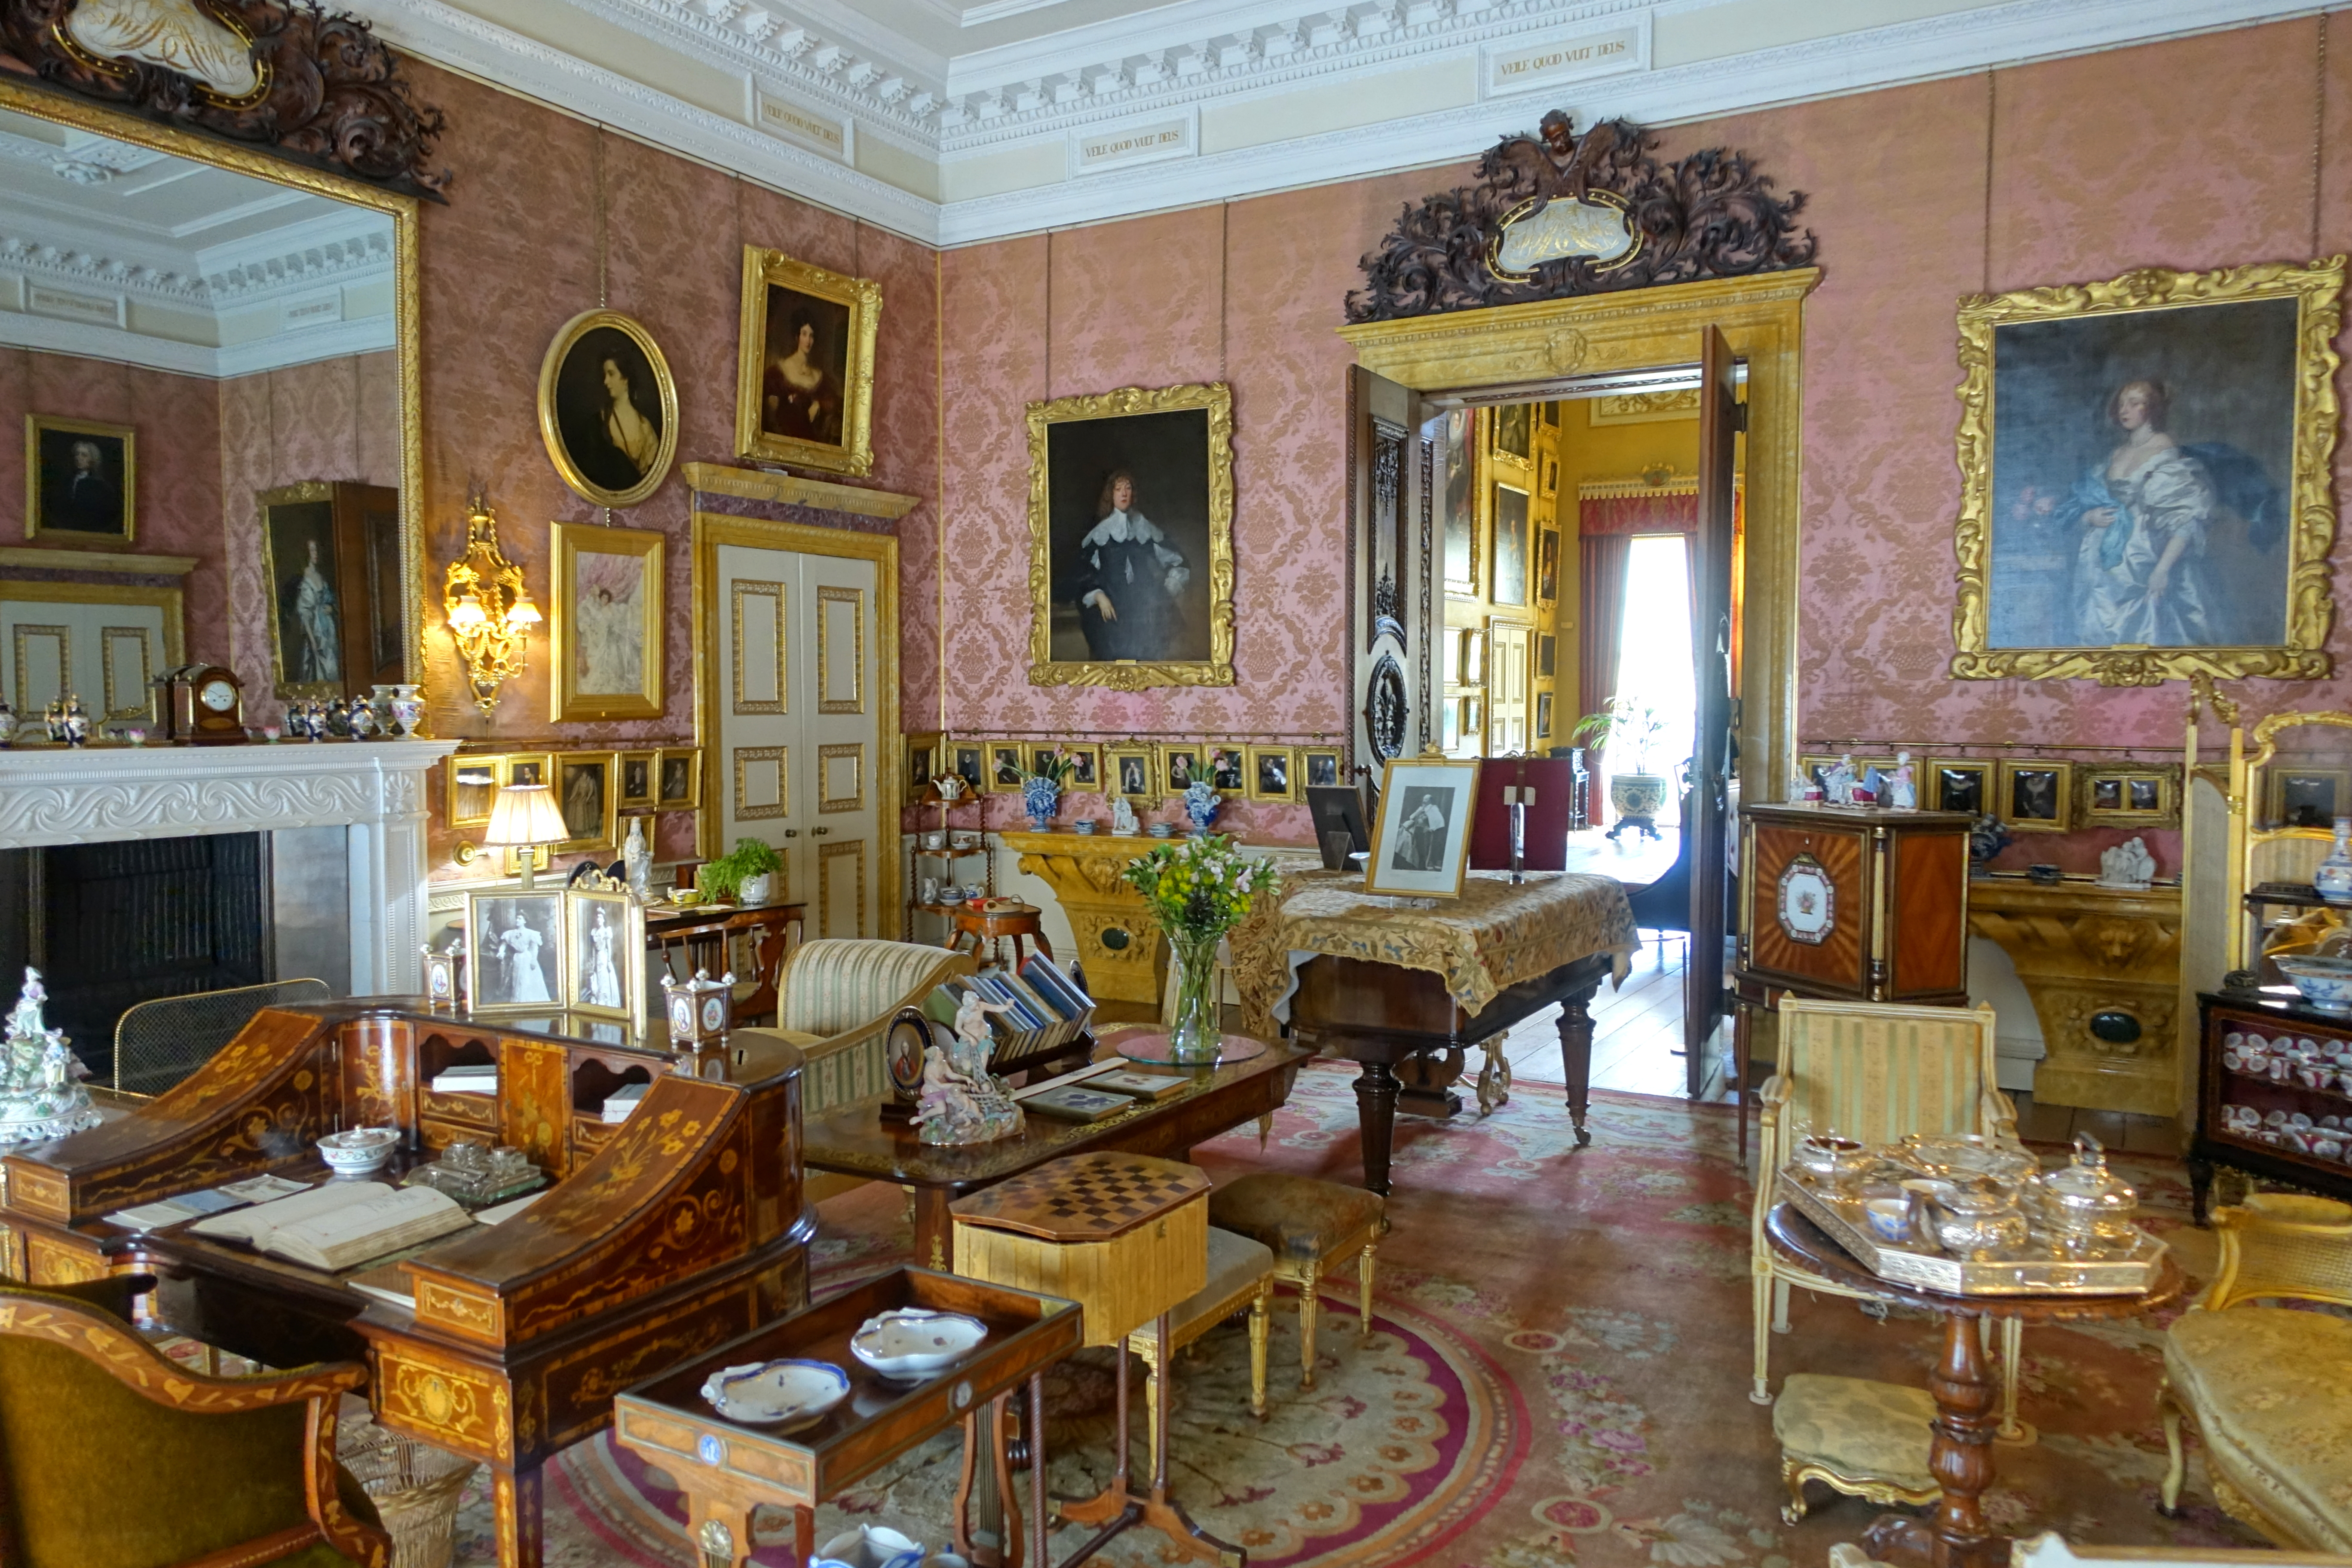 File:Drawing Room - Kingston Lacy - Dorset, England - DSC03410.jpg ...